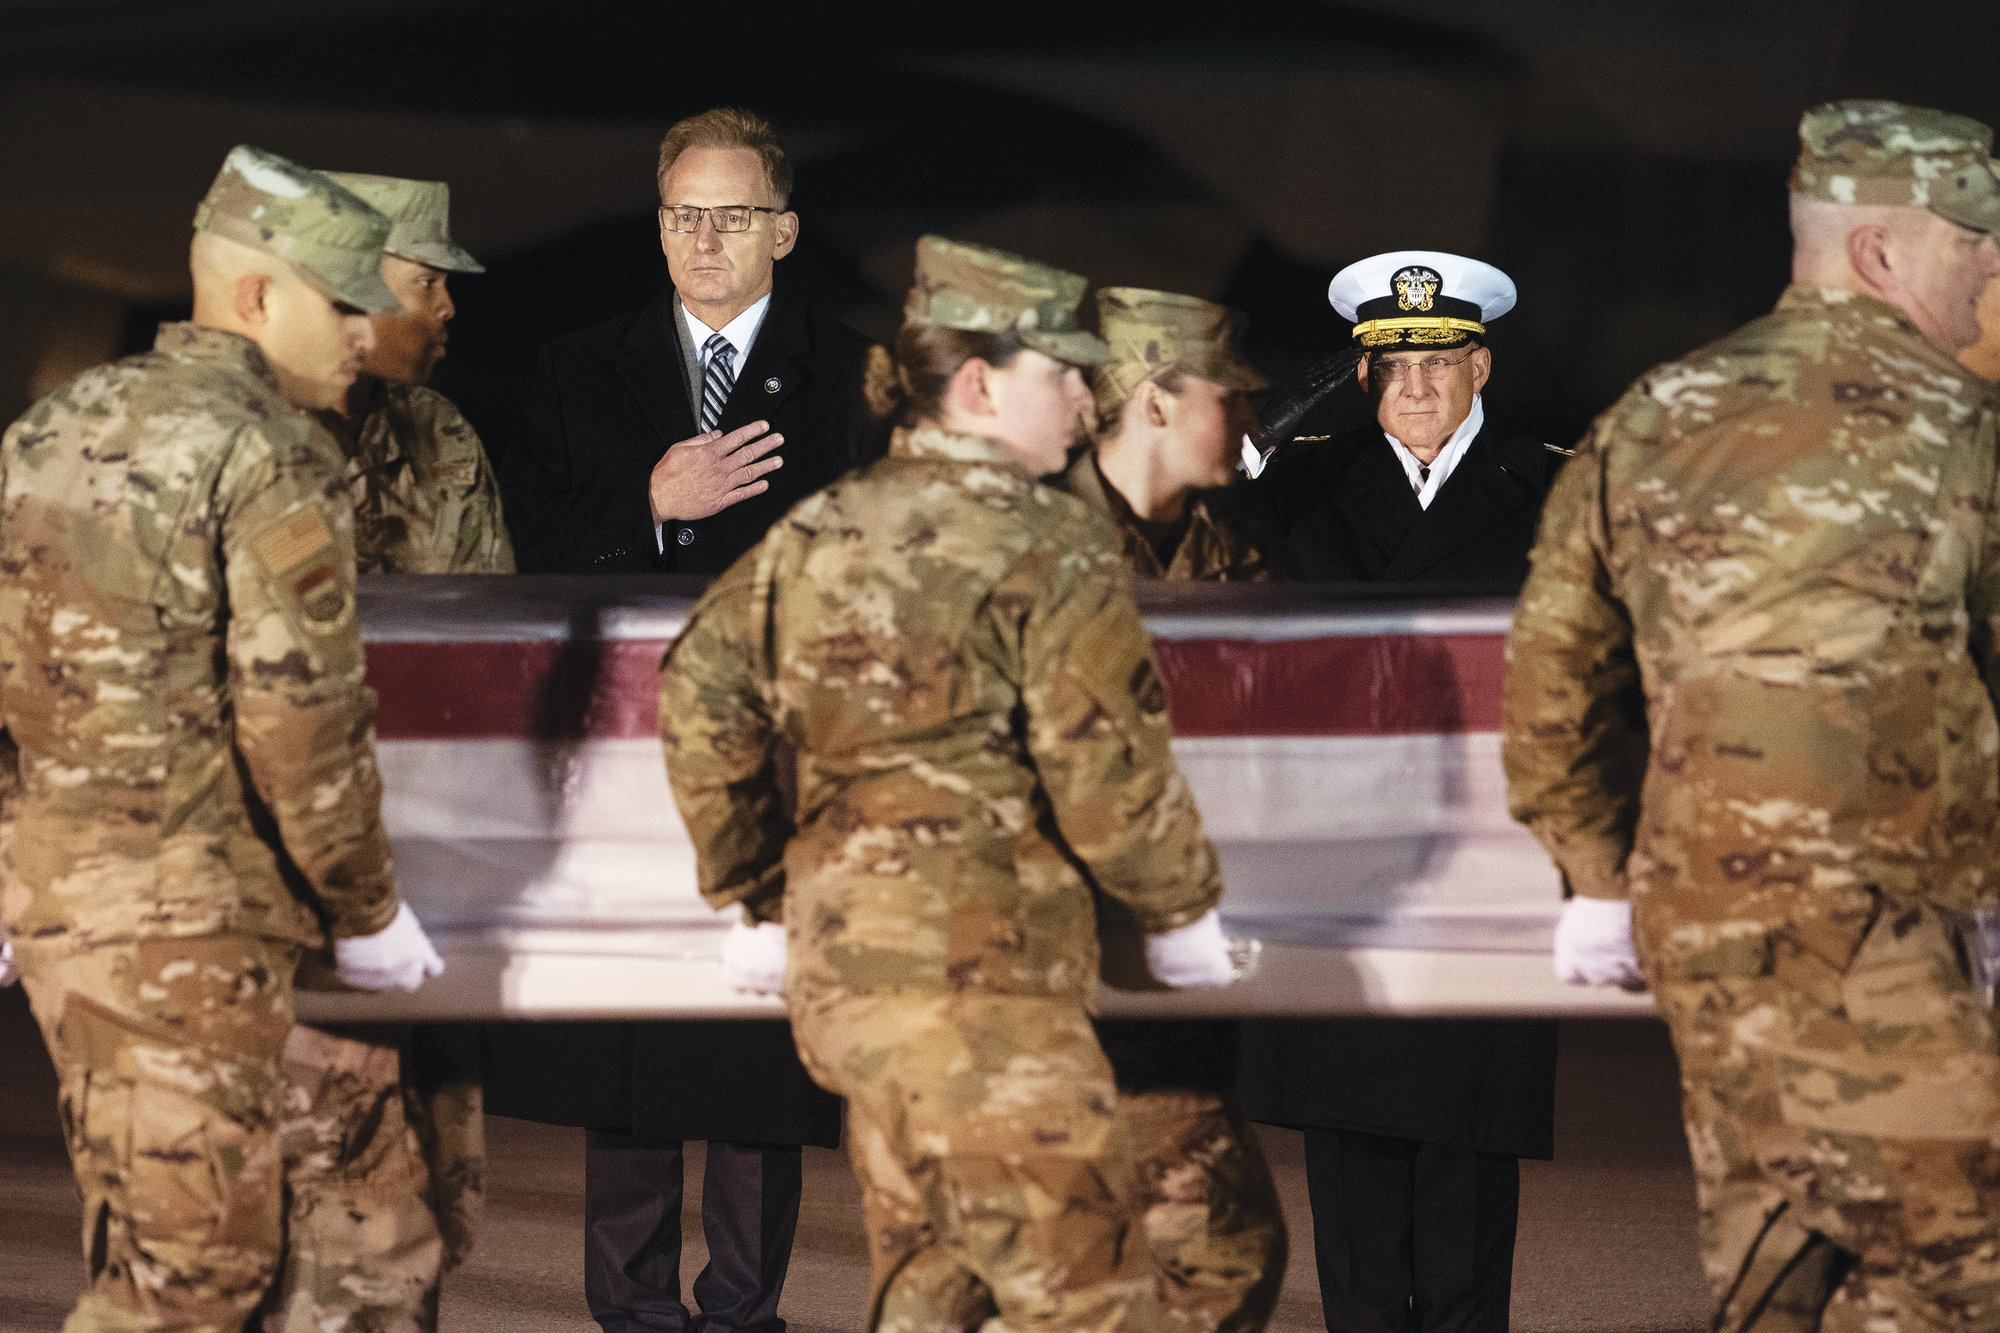 Acting Navy Secretary Thomas Modly, center, and Navy Adm. Michael Gilday, Chief of Naval Operations, look on as an Air Force carry team moves a transfer case containing the remains of Navy Seaman Mohammed Sameh Haitham, of St. Petersburg, Fla., Sunday, Dec. 8, 2019, at Dover Air Force Base, Del. A Saudi gunman killed three people including Haitham in a shooting at Naval Air Station Pensacola in Florida.